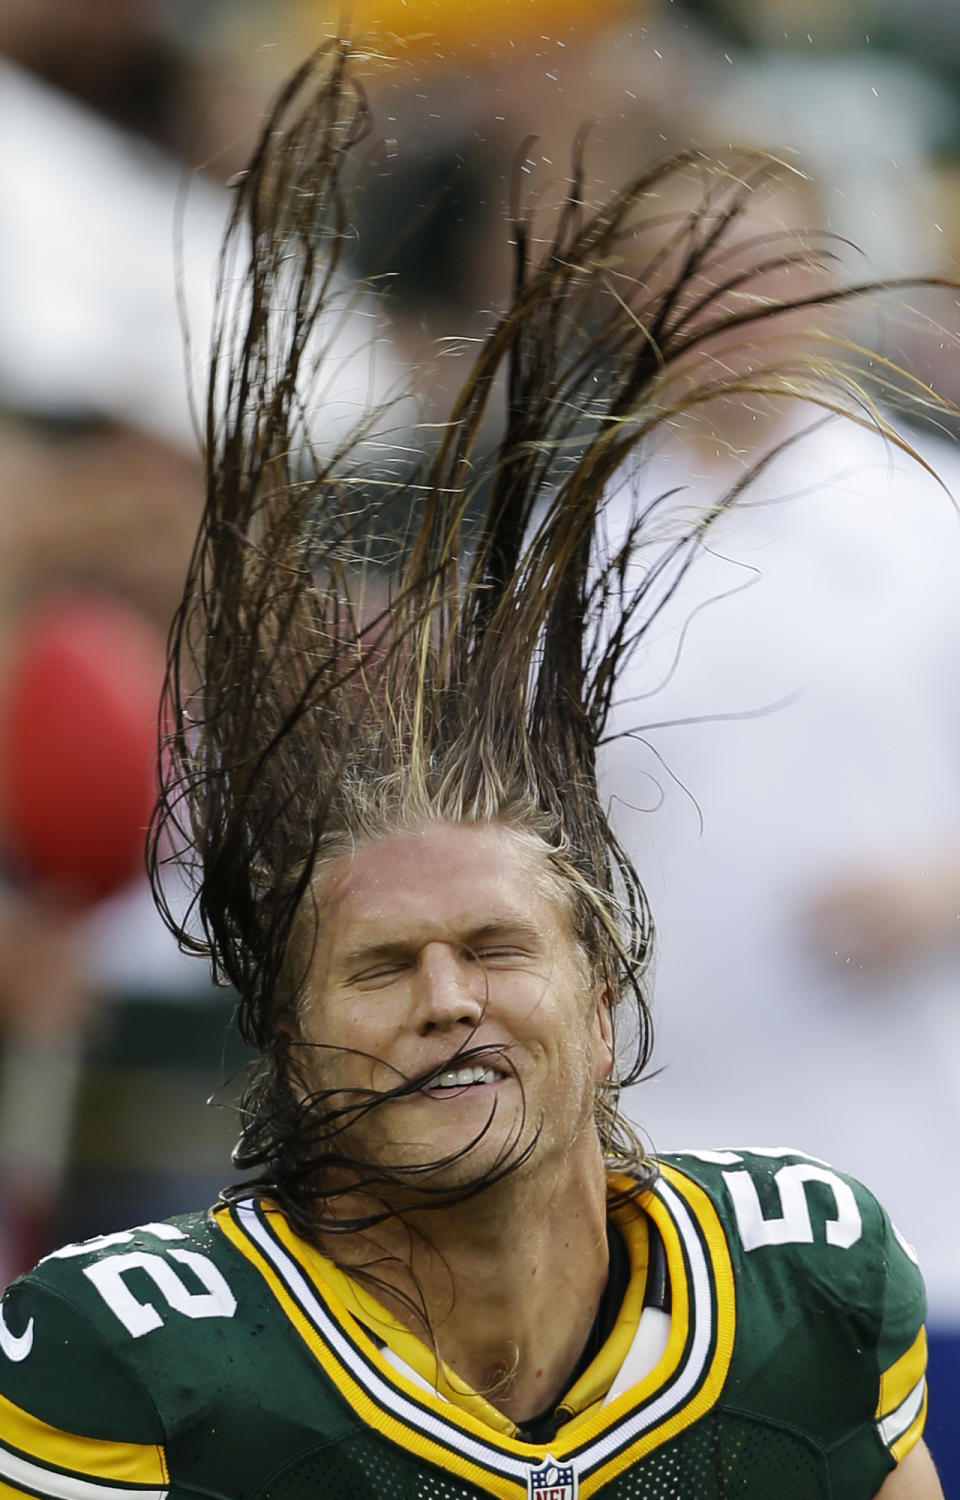 Green Bay Packers linebacker Clay Matthews flips his hair before a preseason NFL football game against the Cleveland Browns Thursday, Aug. 16, 2012, in Green Bay, Wis. (AP Photo/Jeffrey Phelps)